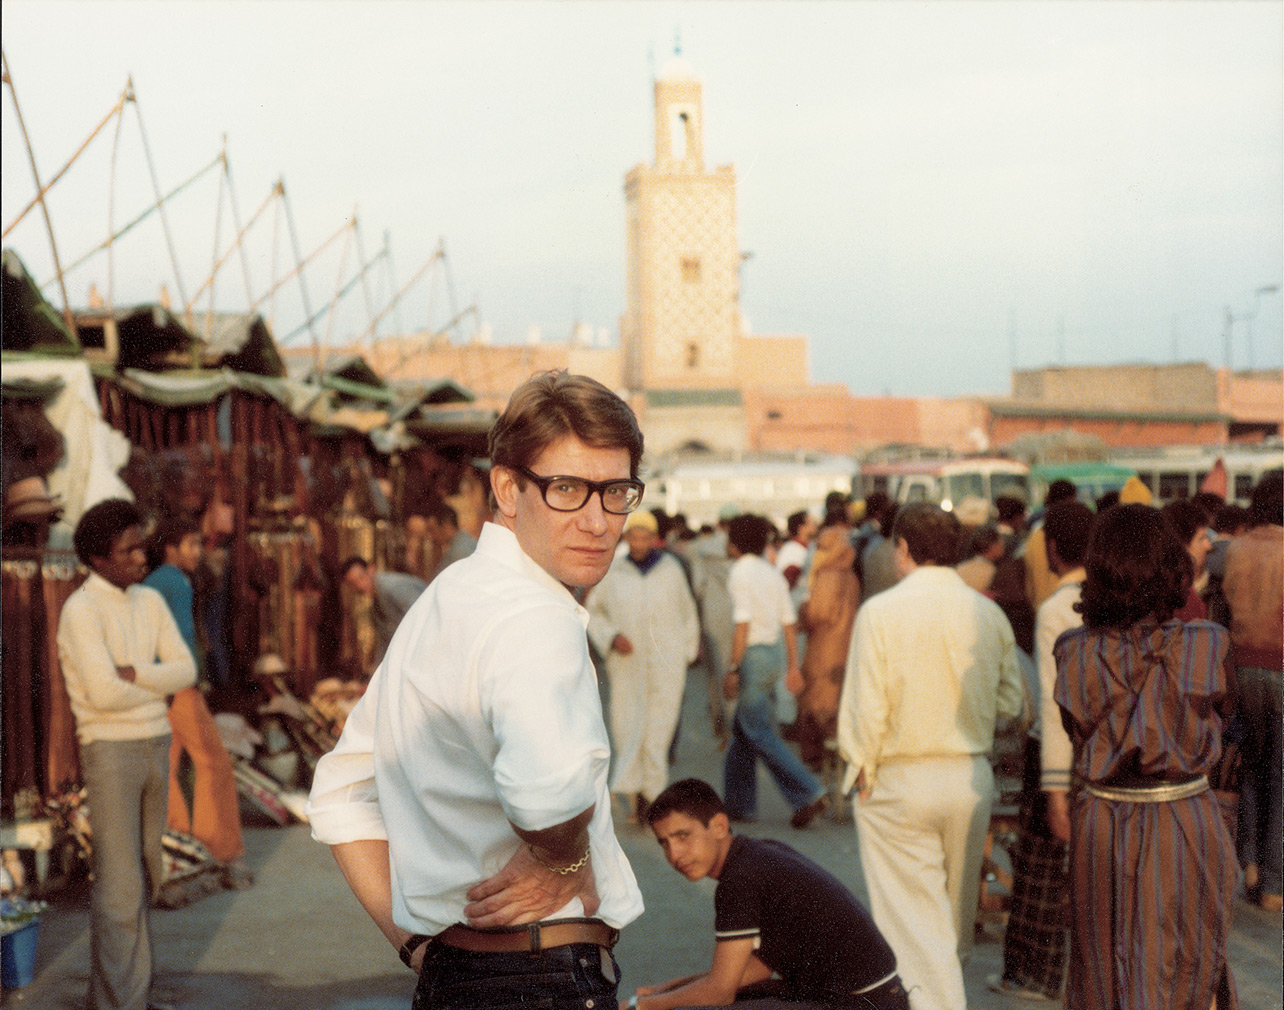 Yves Saint Laurent, Jemaa el-Fnaa square (c) Reginald Gray